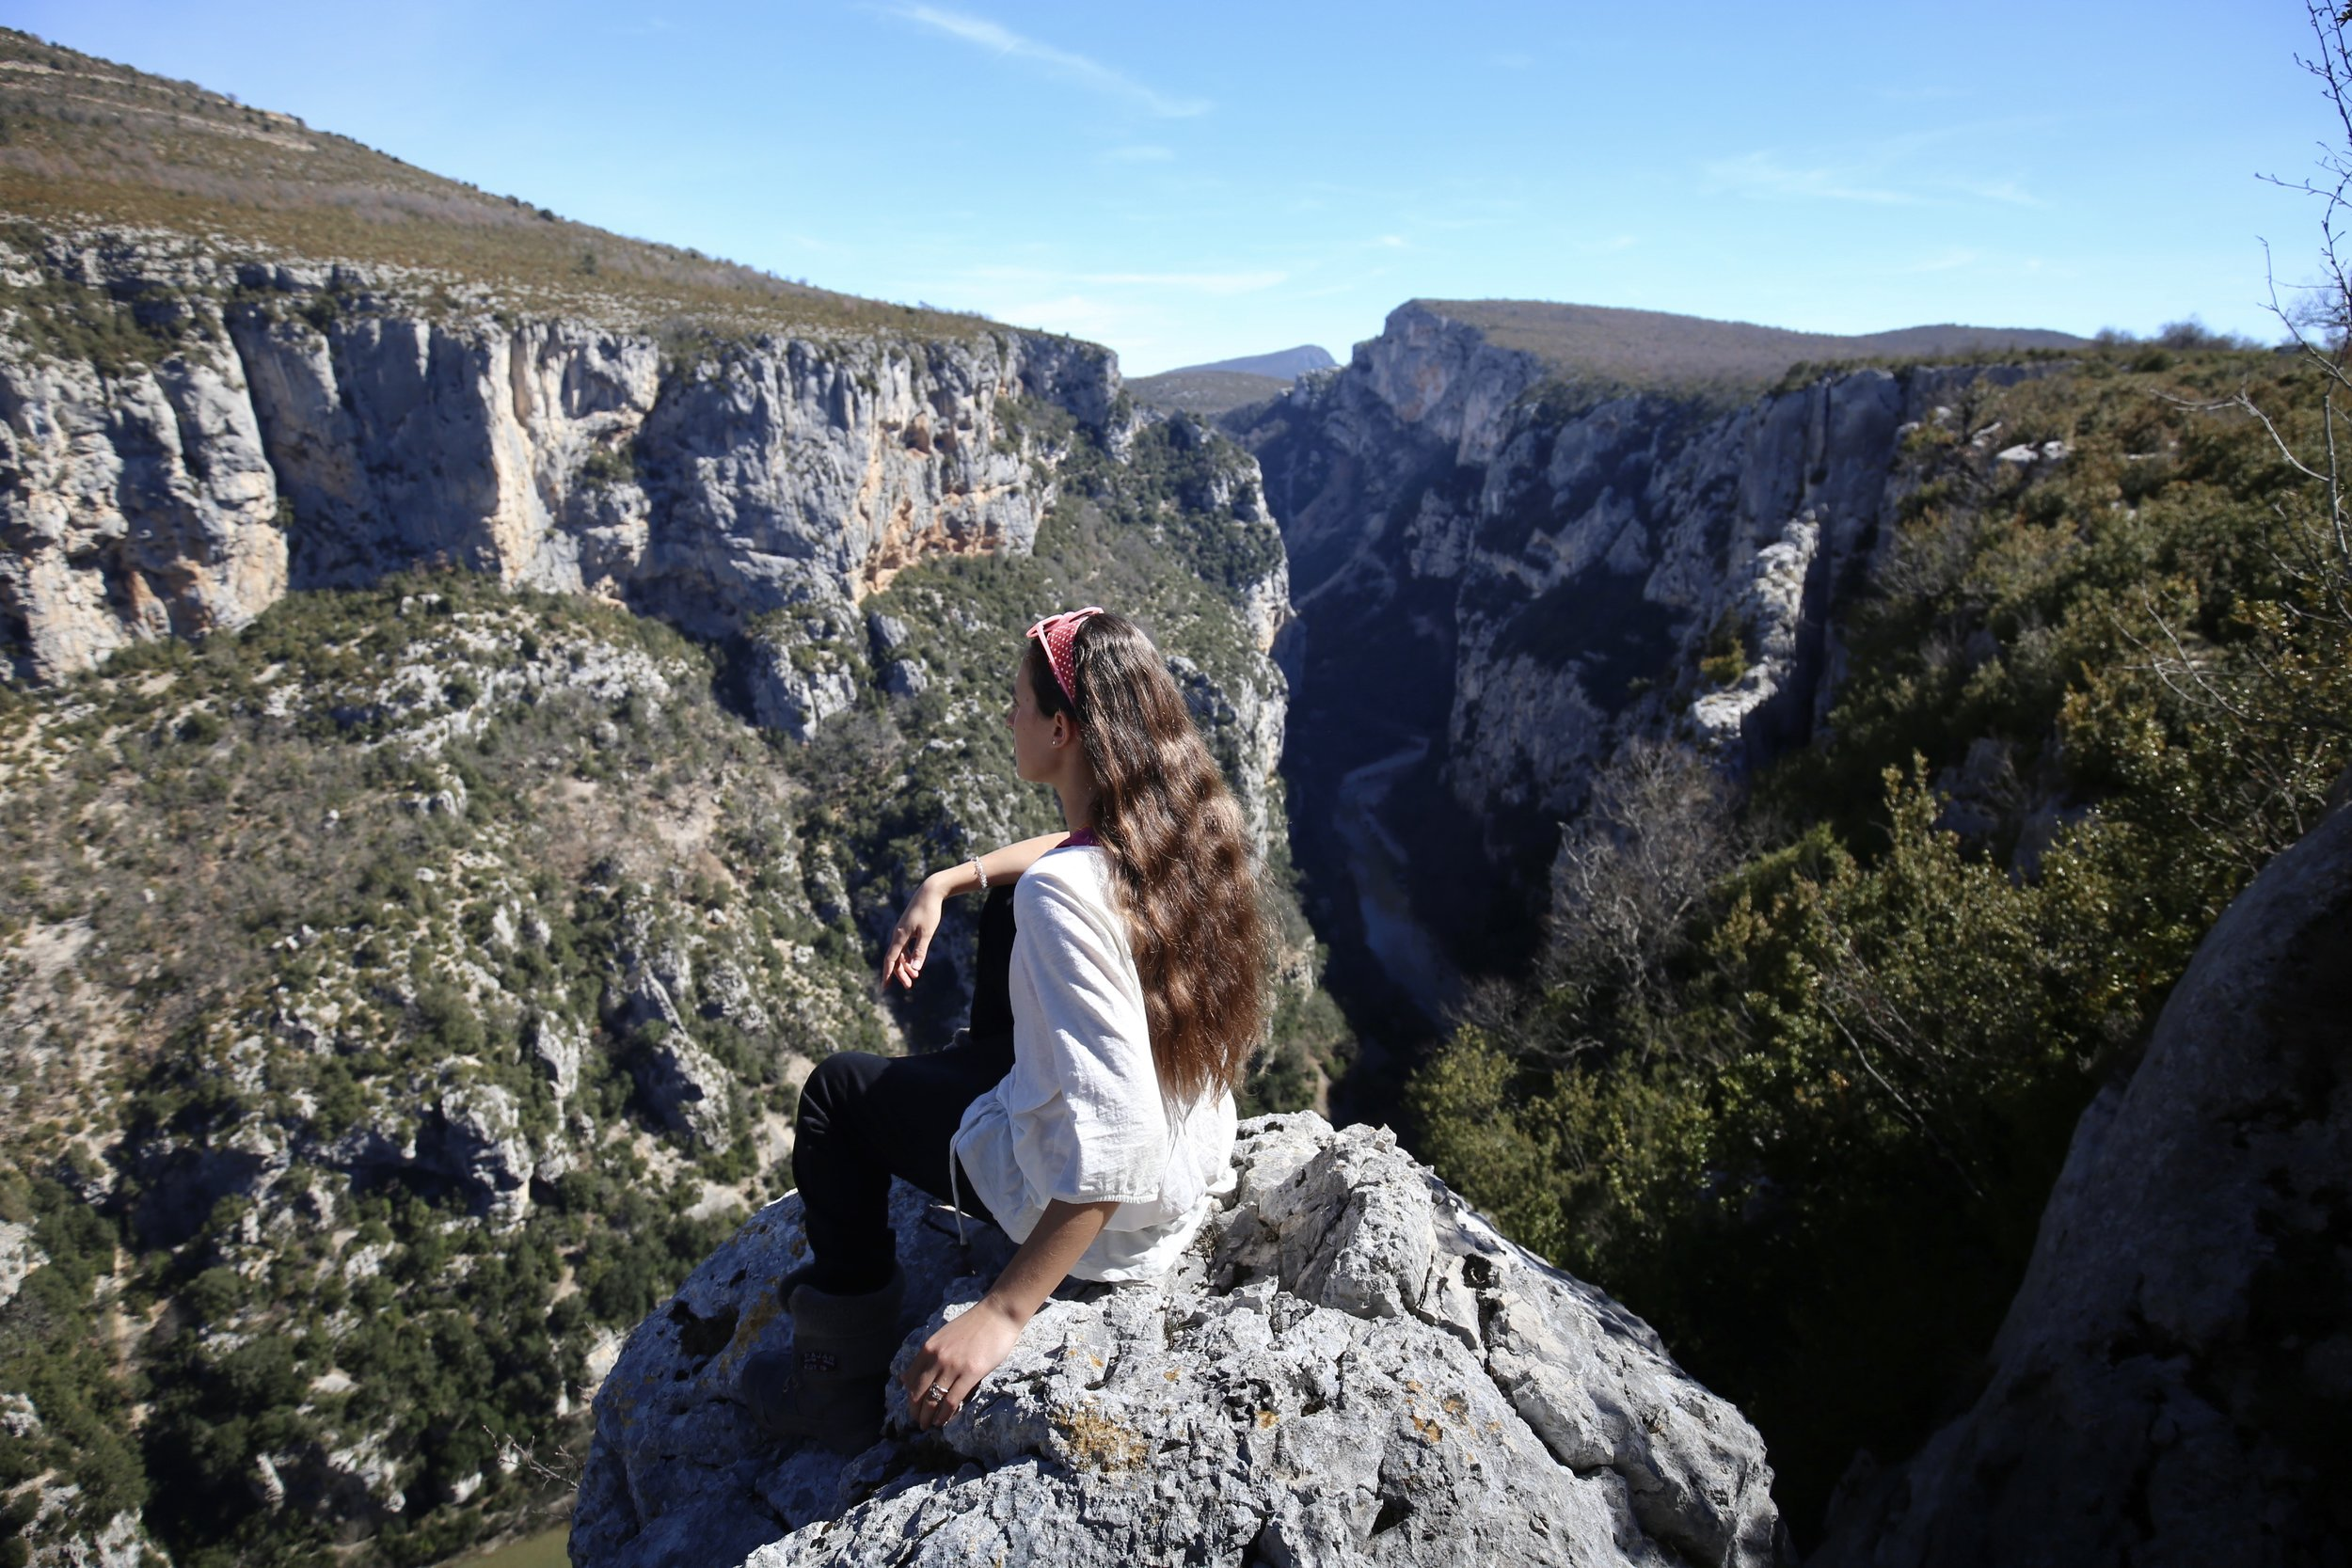 Sitting on the edge of the Verdon Gorge, looking out over the river far below in the canyon.